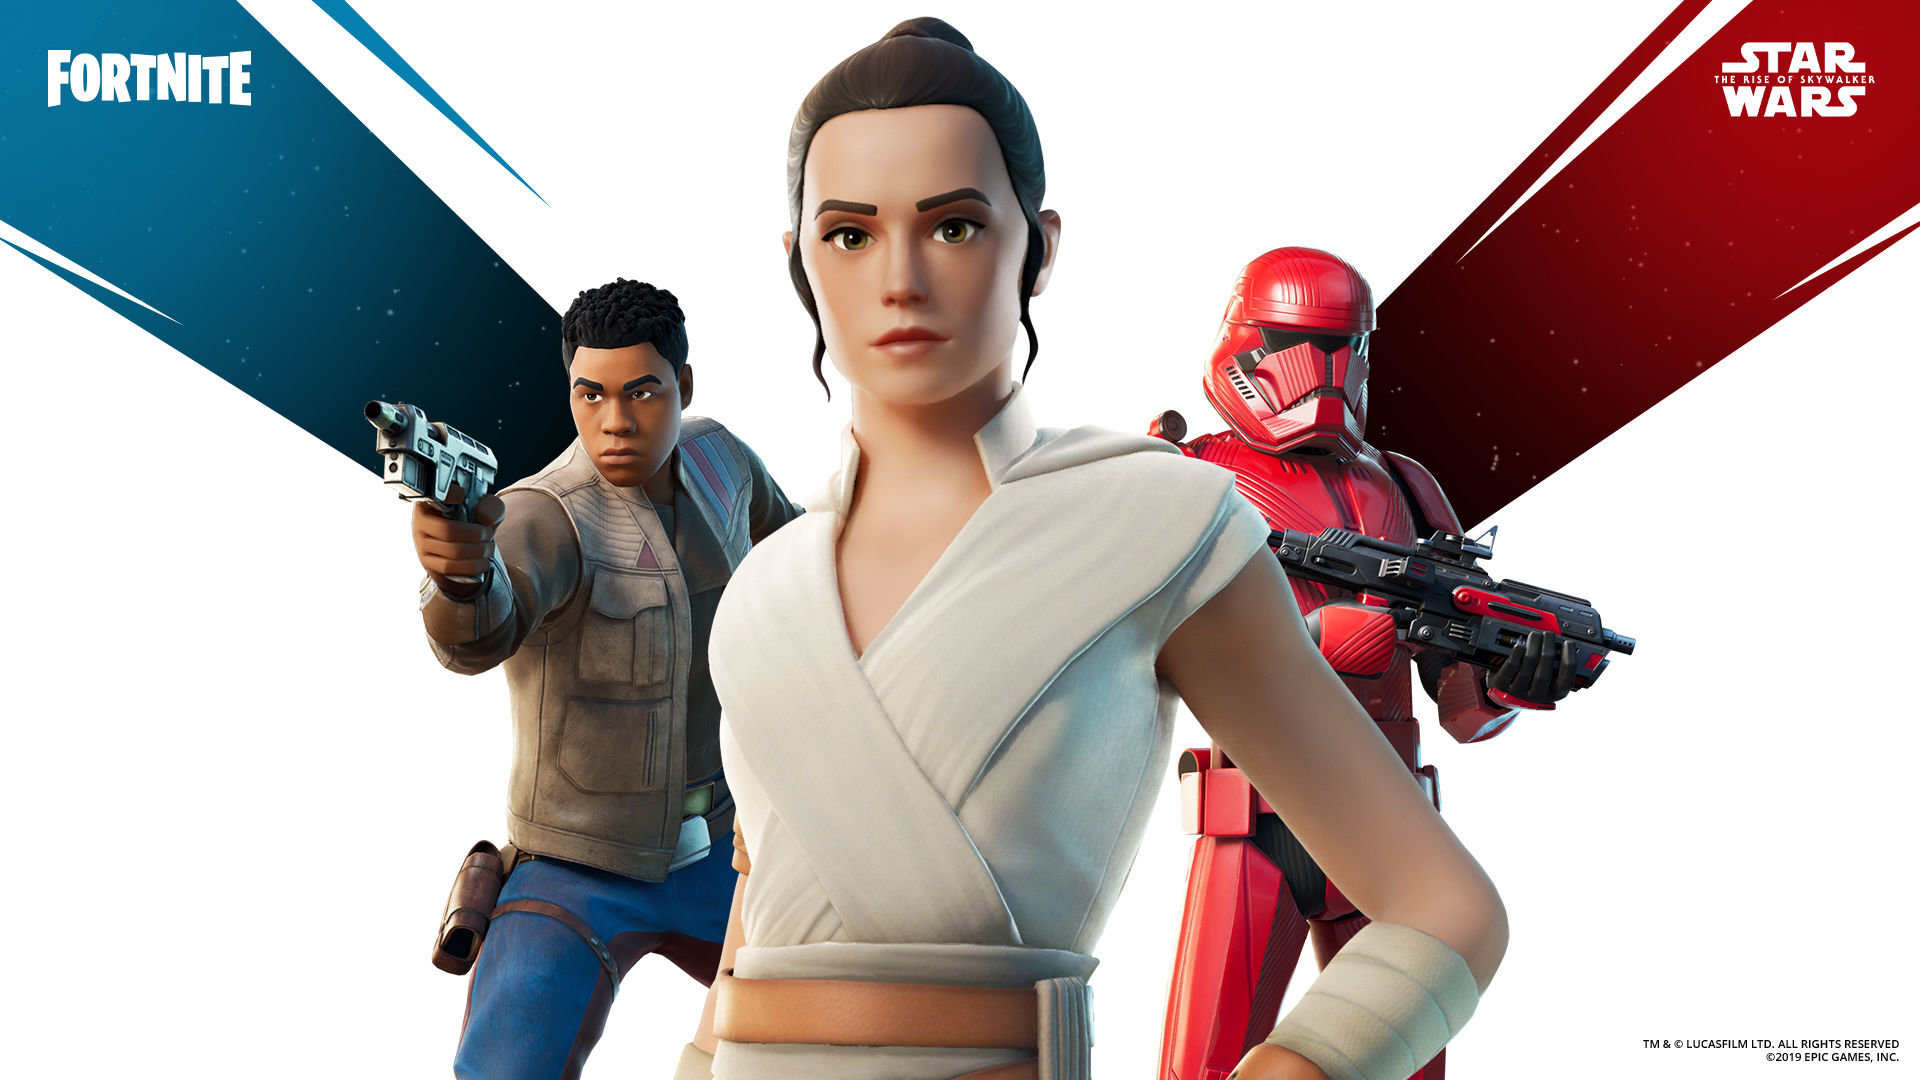 Here S Every Fortnite Star Wars Skin And Cosmetic You Can Get In The New Rise Of Skywalker Crossover Gamesradar